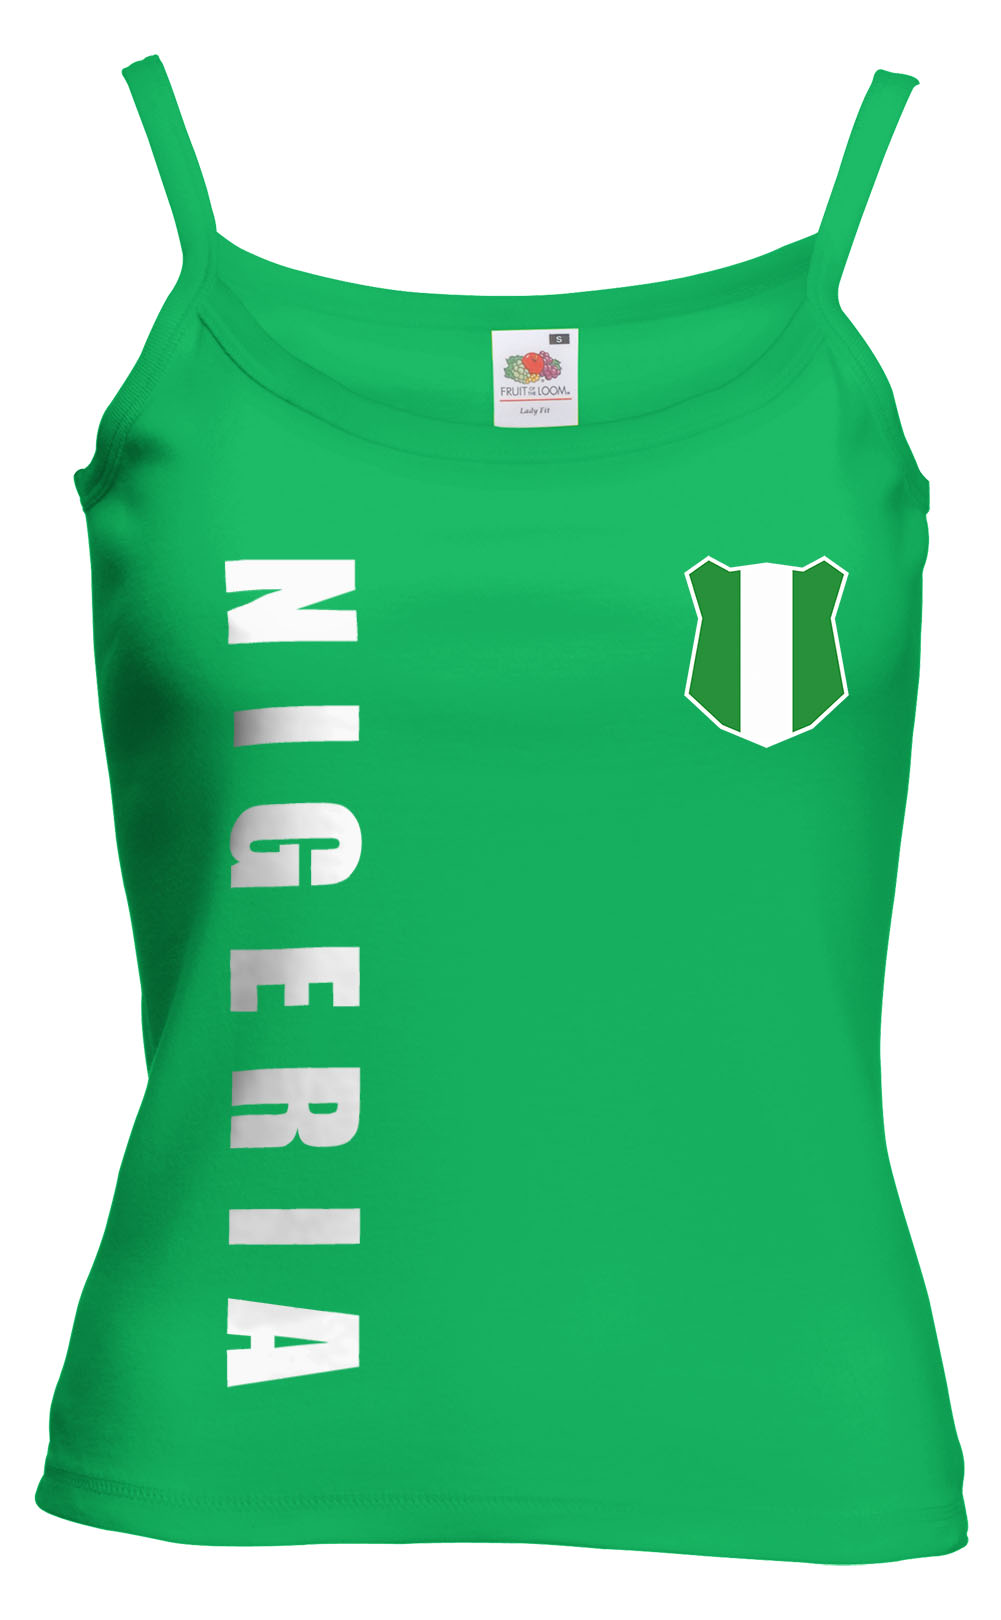 nigeria wm 2018 damen spaghetti t shirt top trikot name. Black Bedroom Furniture Sets. Home Design Ideas